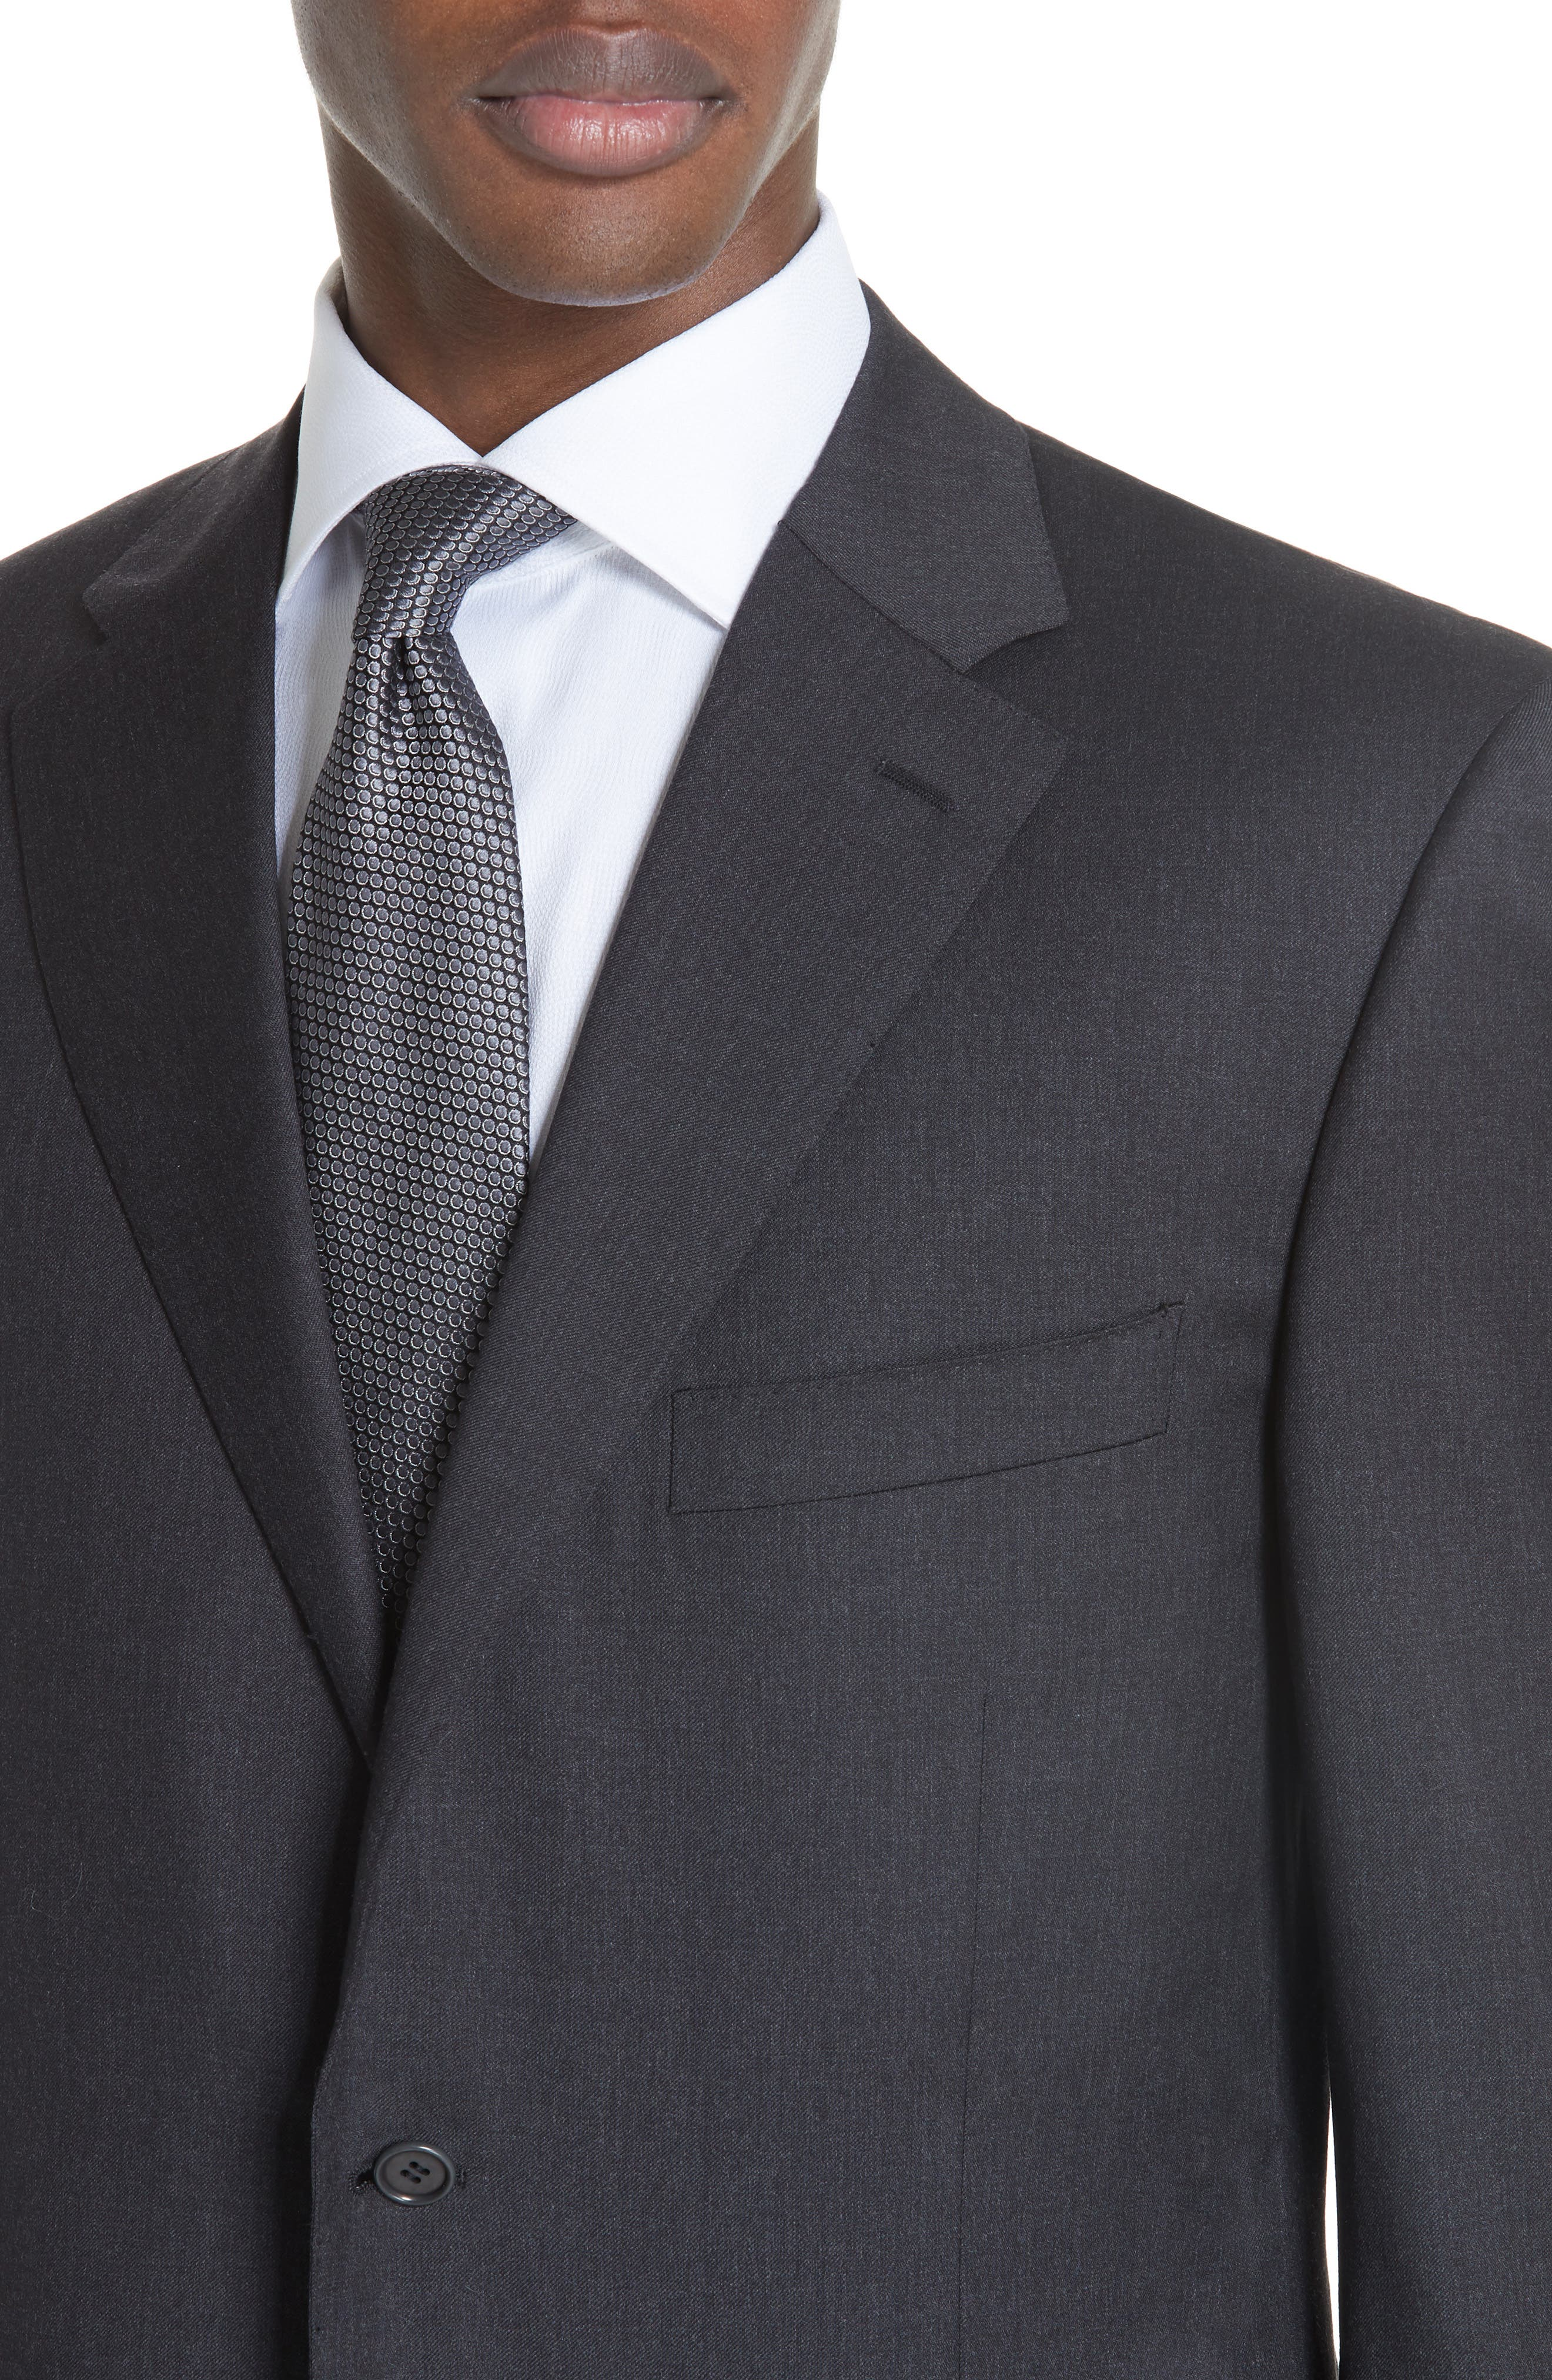 CANALI, Classic Fit Wool Suit, Alternate thumbnail 4, color, CHARCOAL